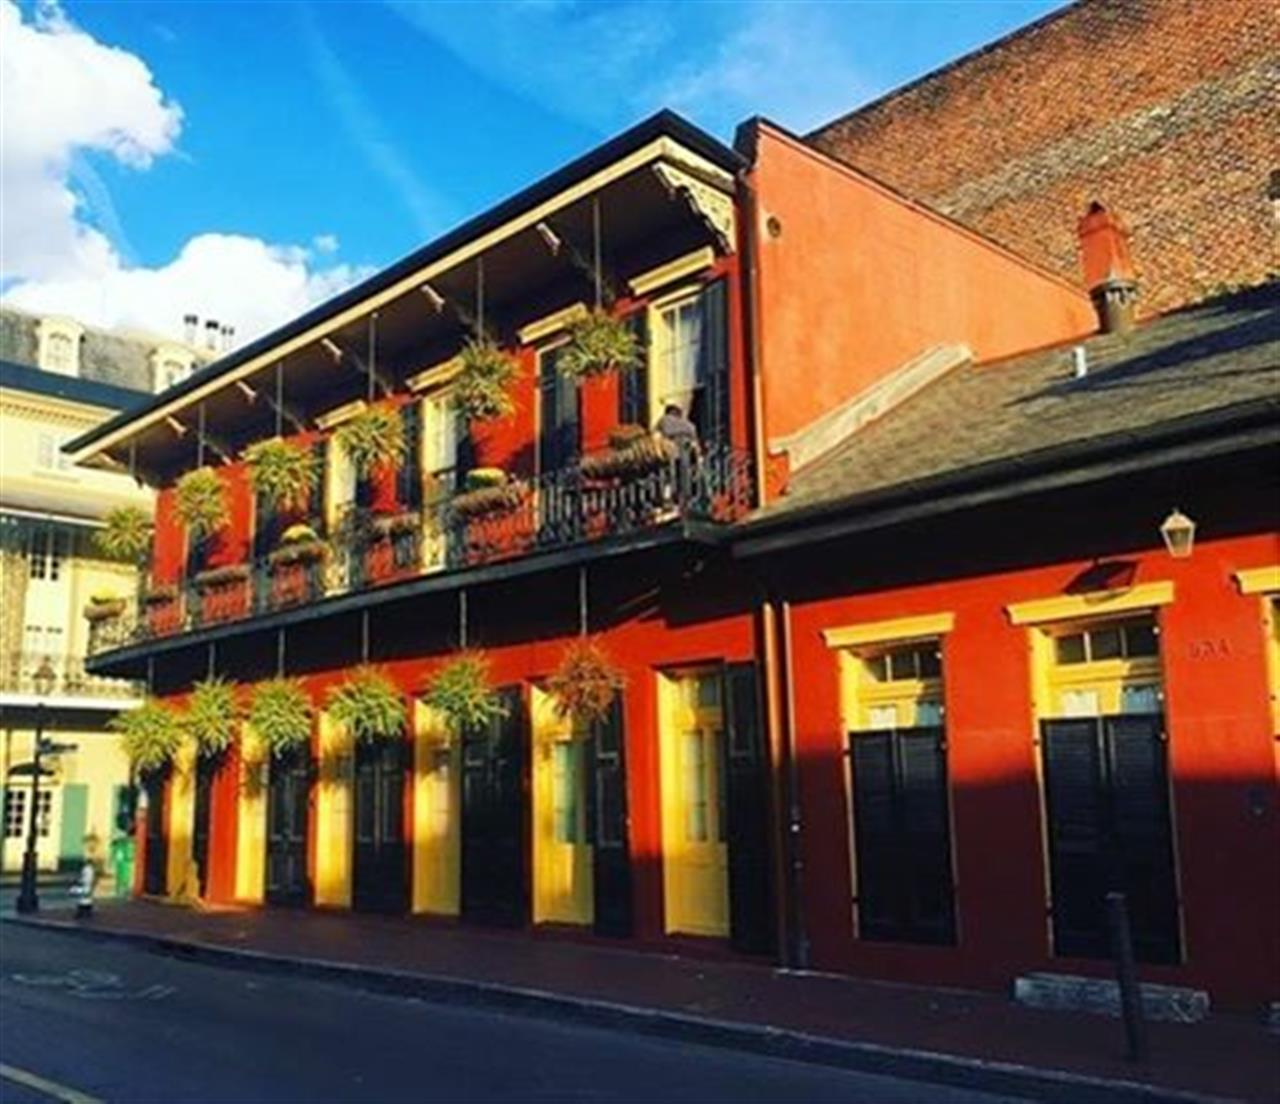 New Orleans is looking good in this lingering summer weather! ?: @cbrookeb